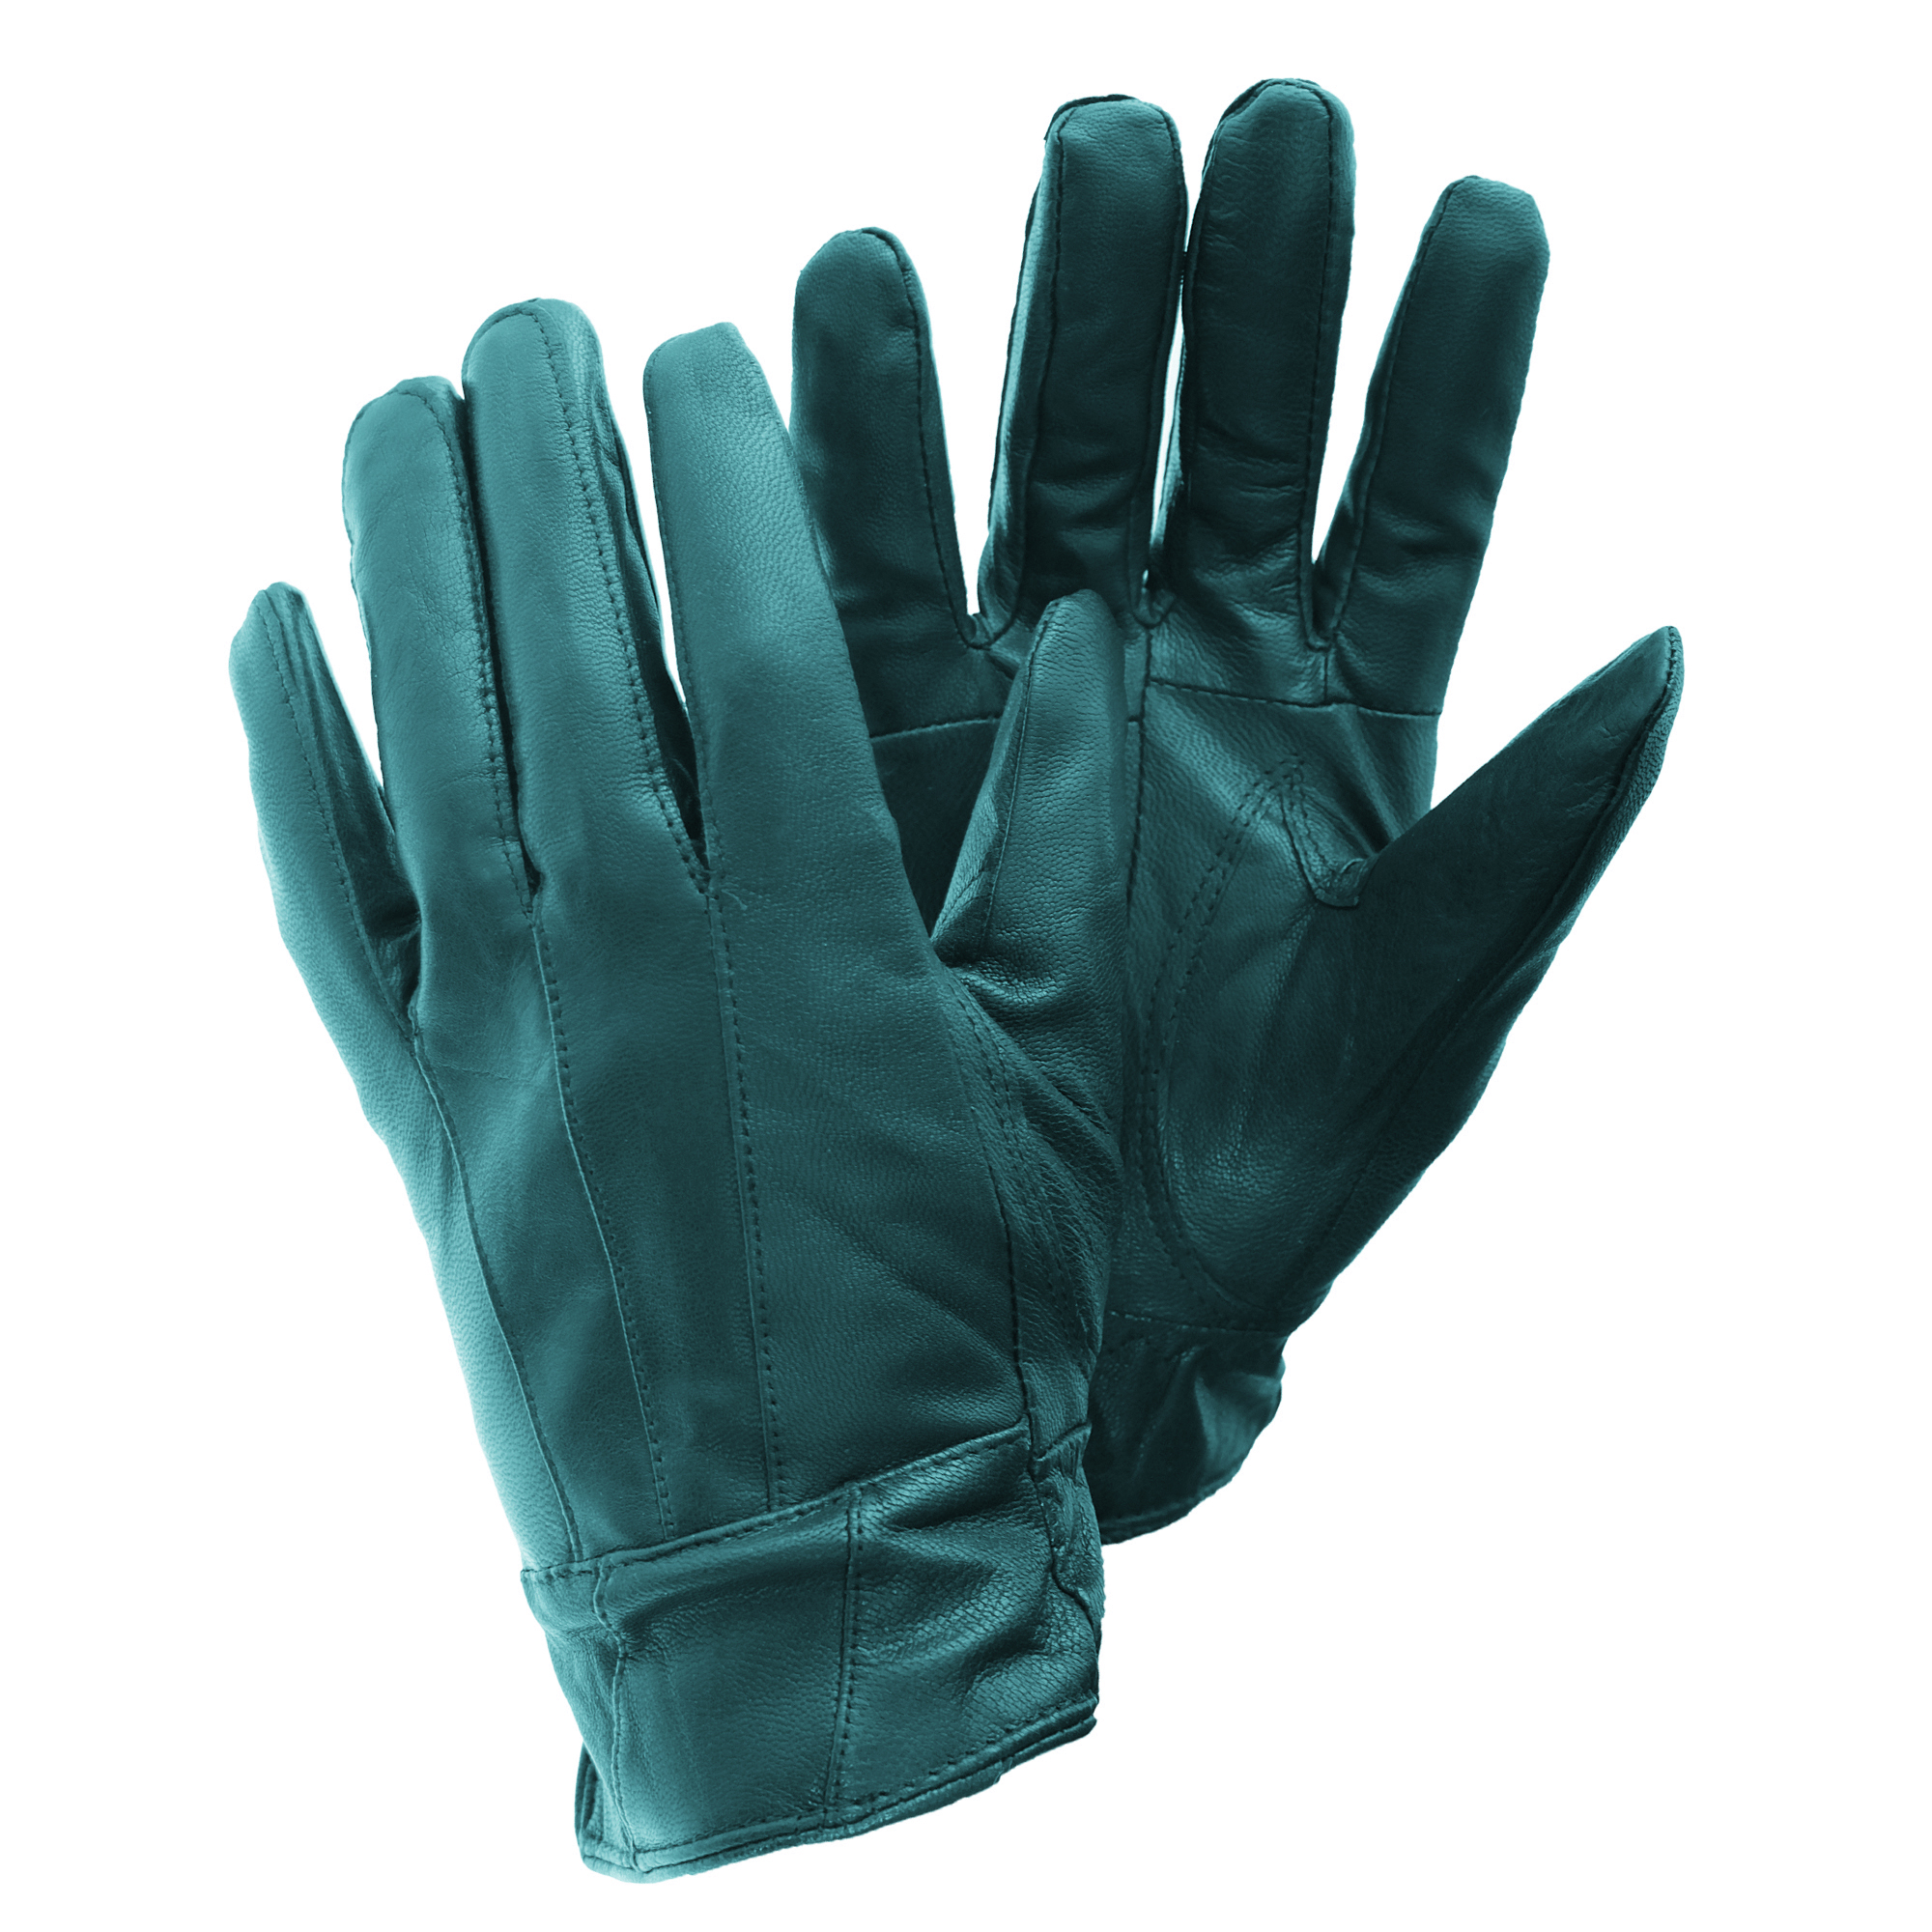 Womens leather gloves teal - Floso Ladies Womens Sheepskin Leather Gloves